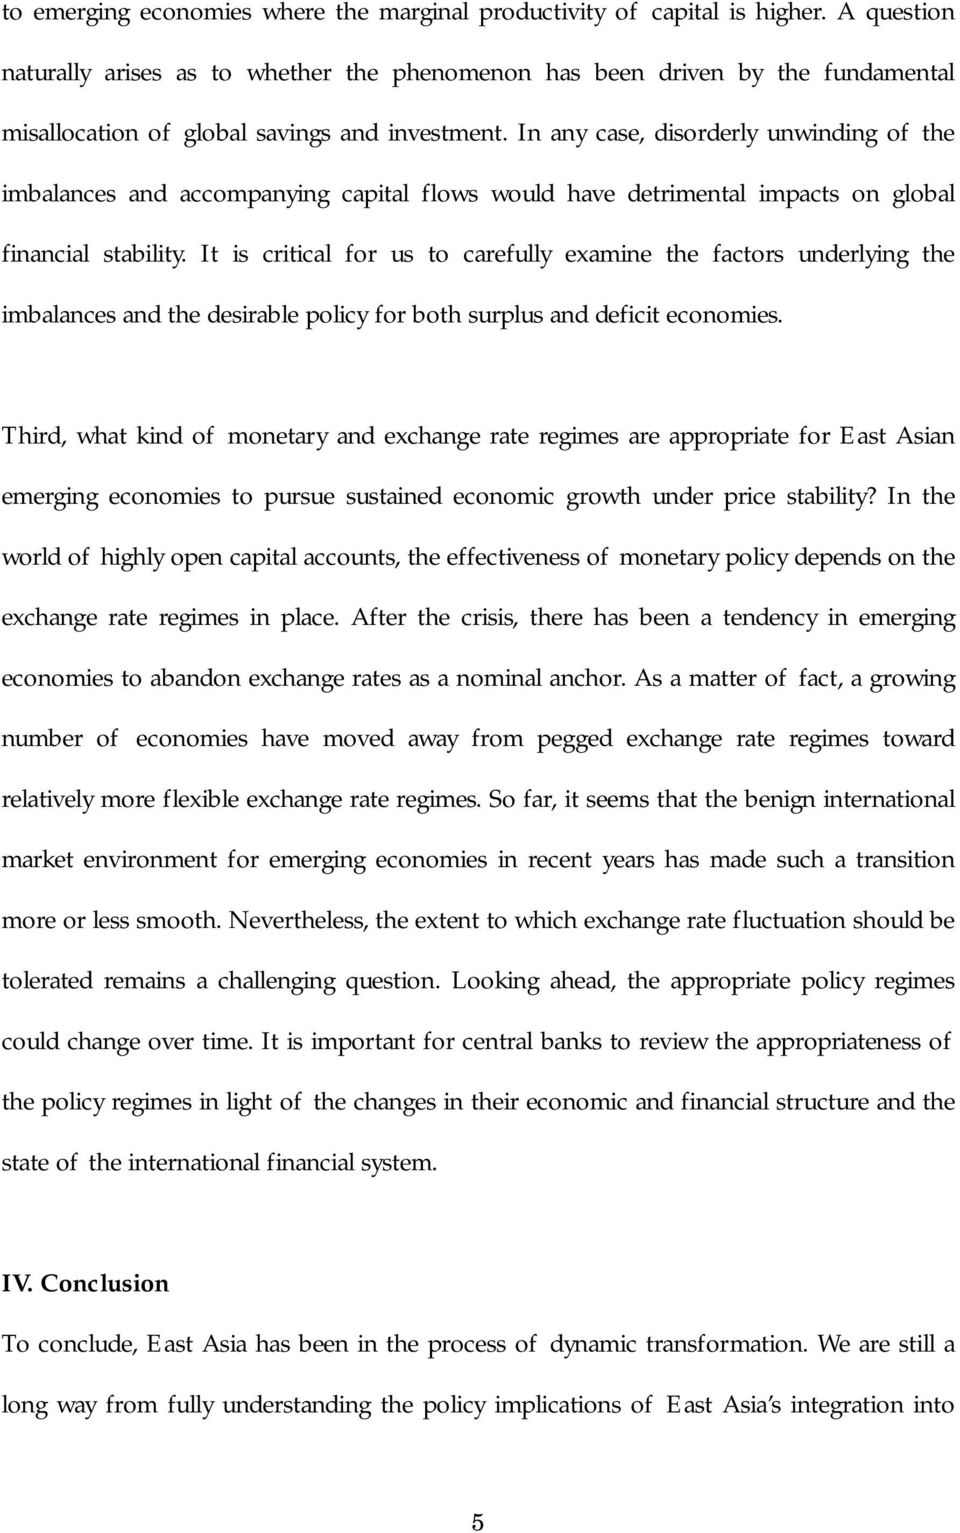 In any case, disorderly unwinding of the imbalances and accompanying capital flows would have detrimental impacts on global financial stability.